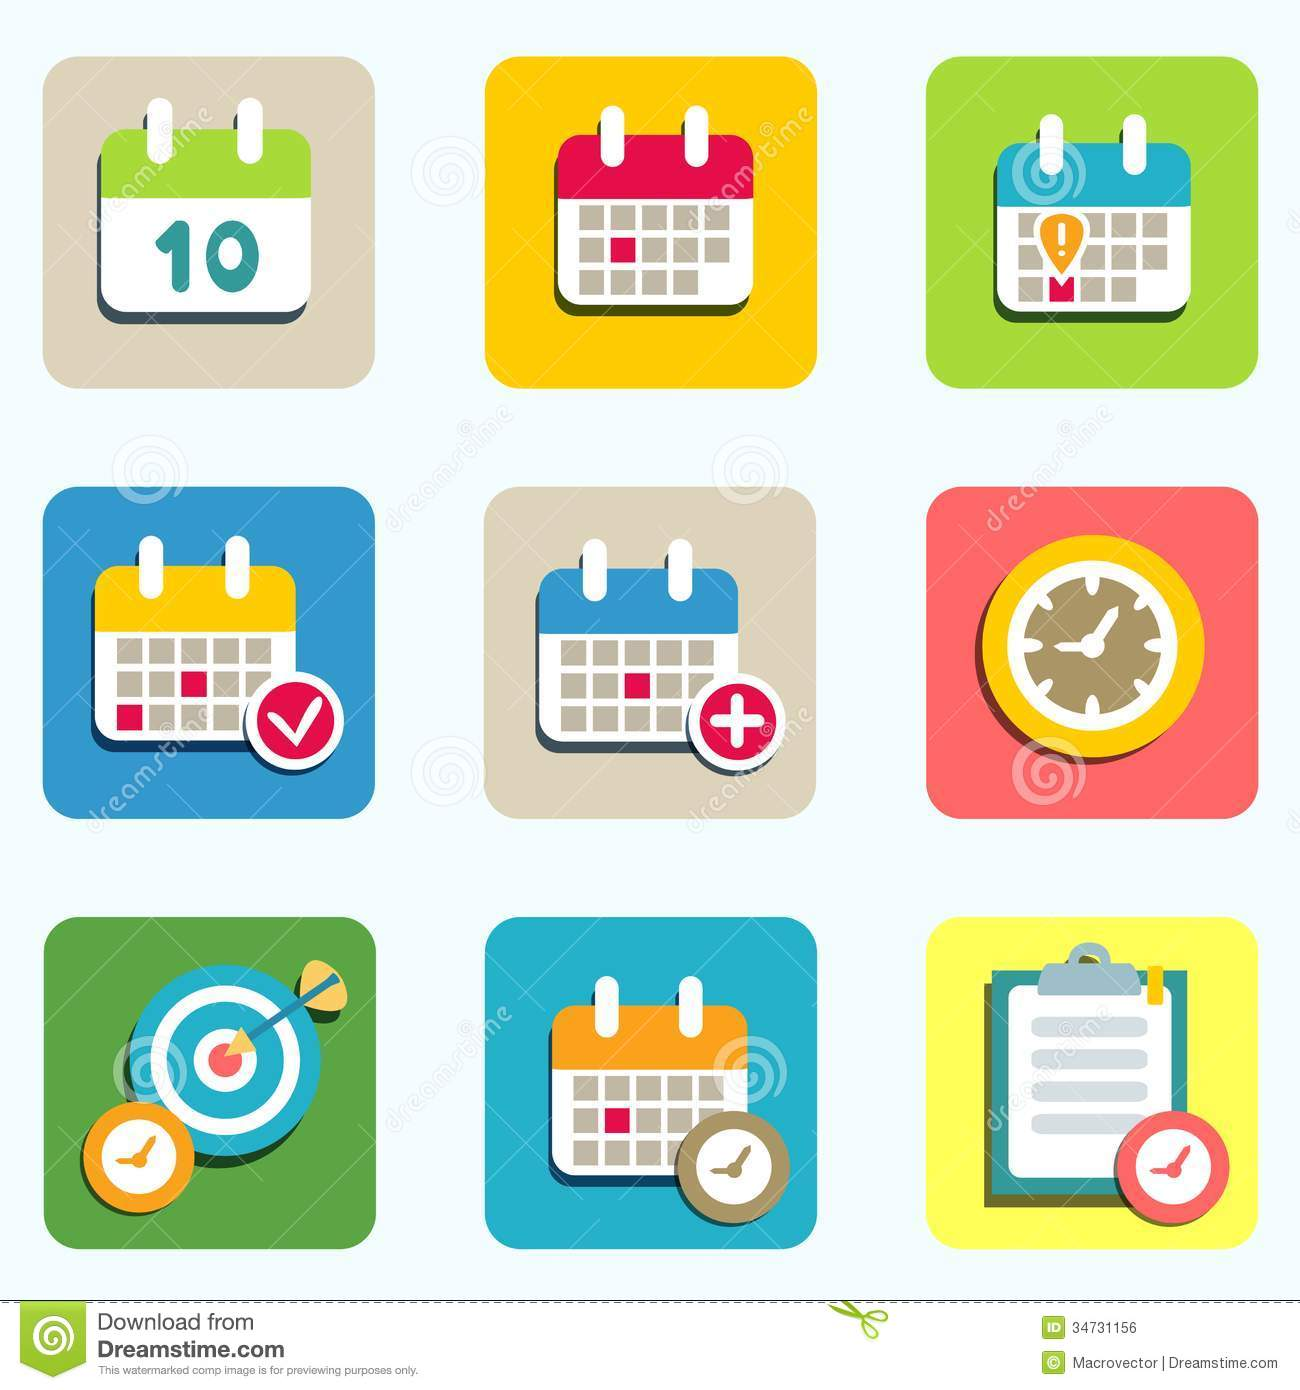 Event Calendar Icon : Graphic icon for events images upcomingevents